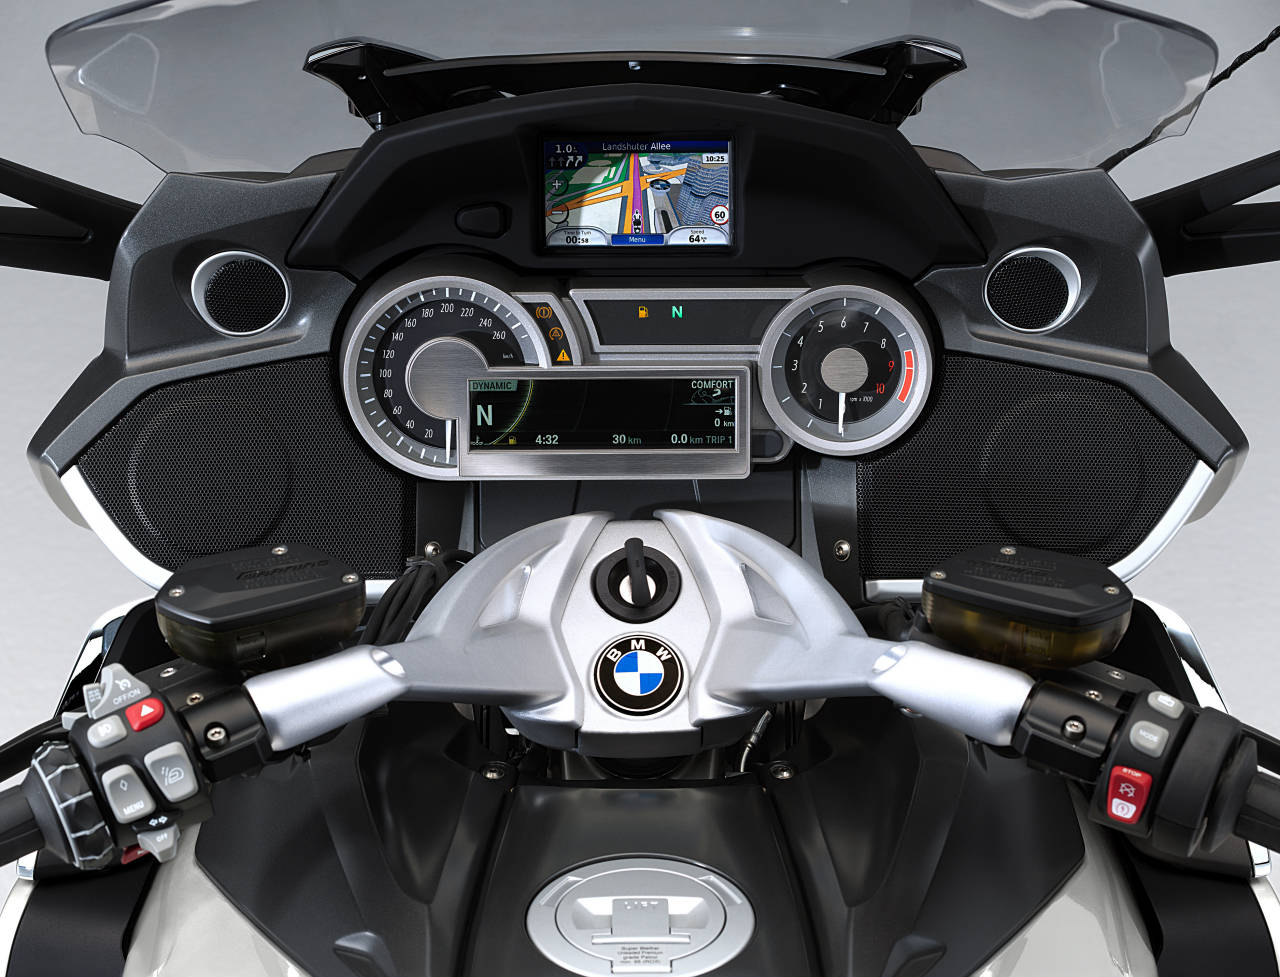 2012 bmw k1600gtl touring concept